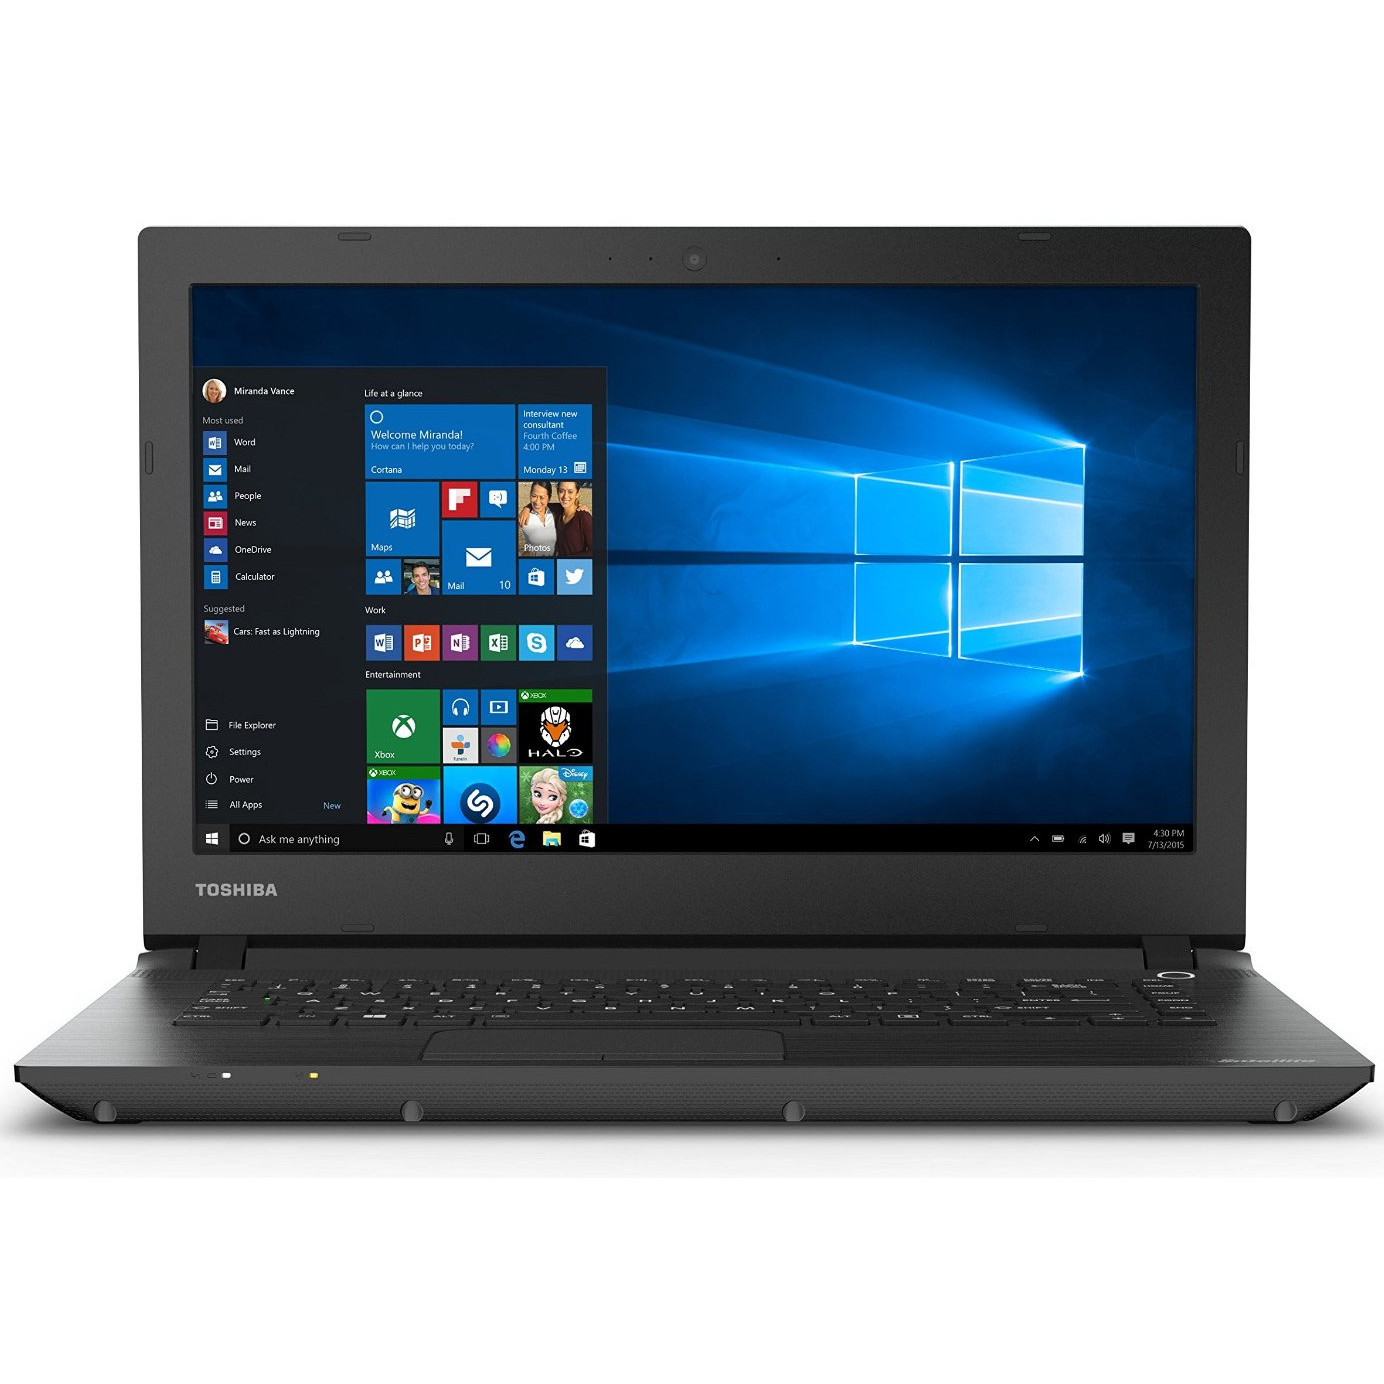 "Refurbished Toshiba Satellite 14"" LED Intel Celeron 2.16GHz 2GB 32GB SSD Windows 10 Laptop"